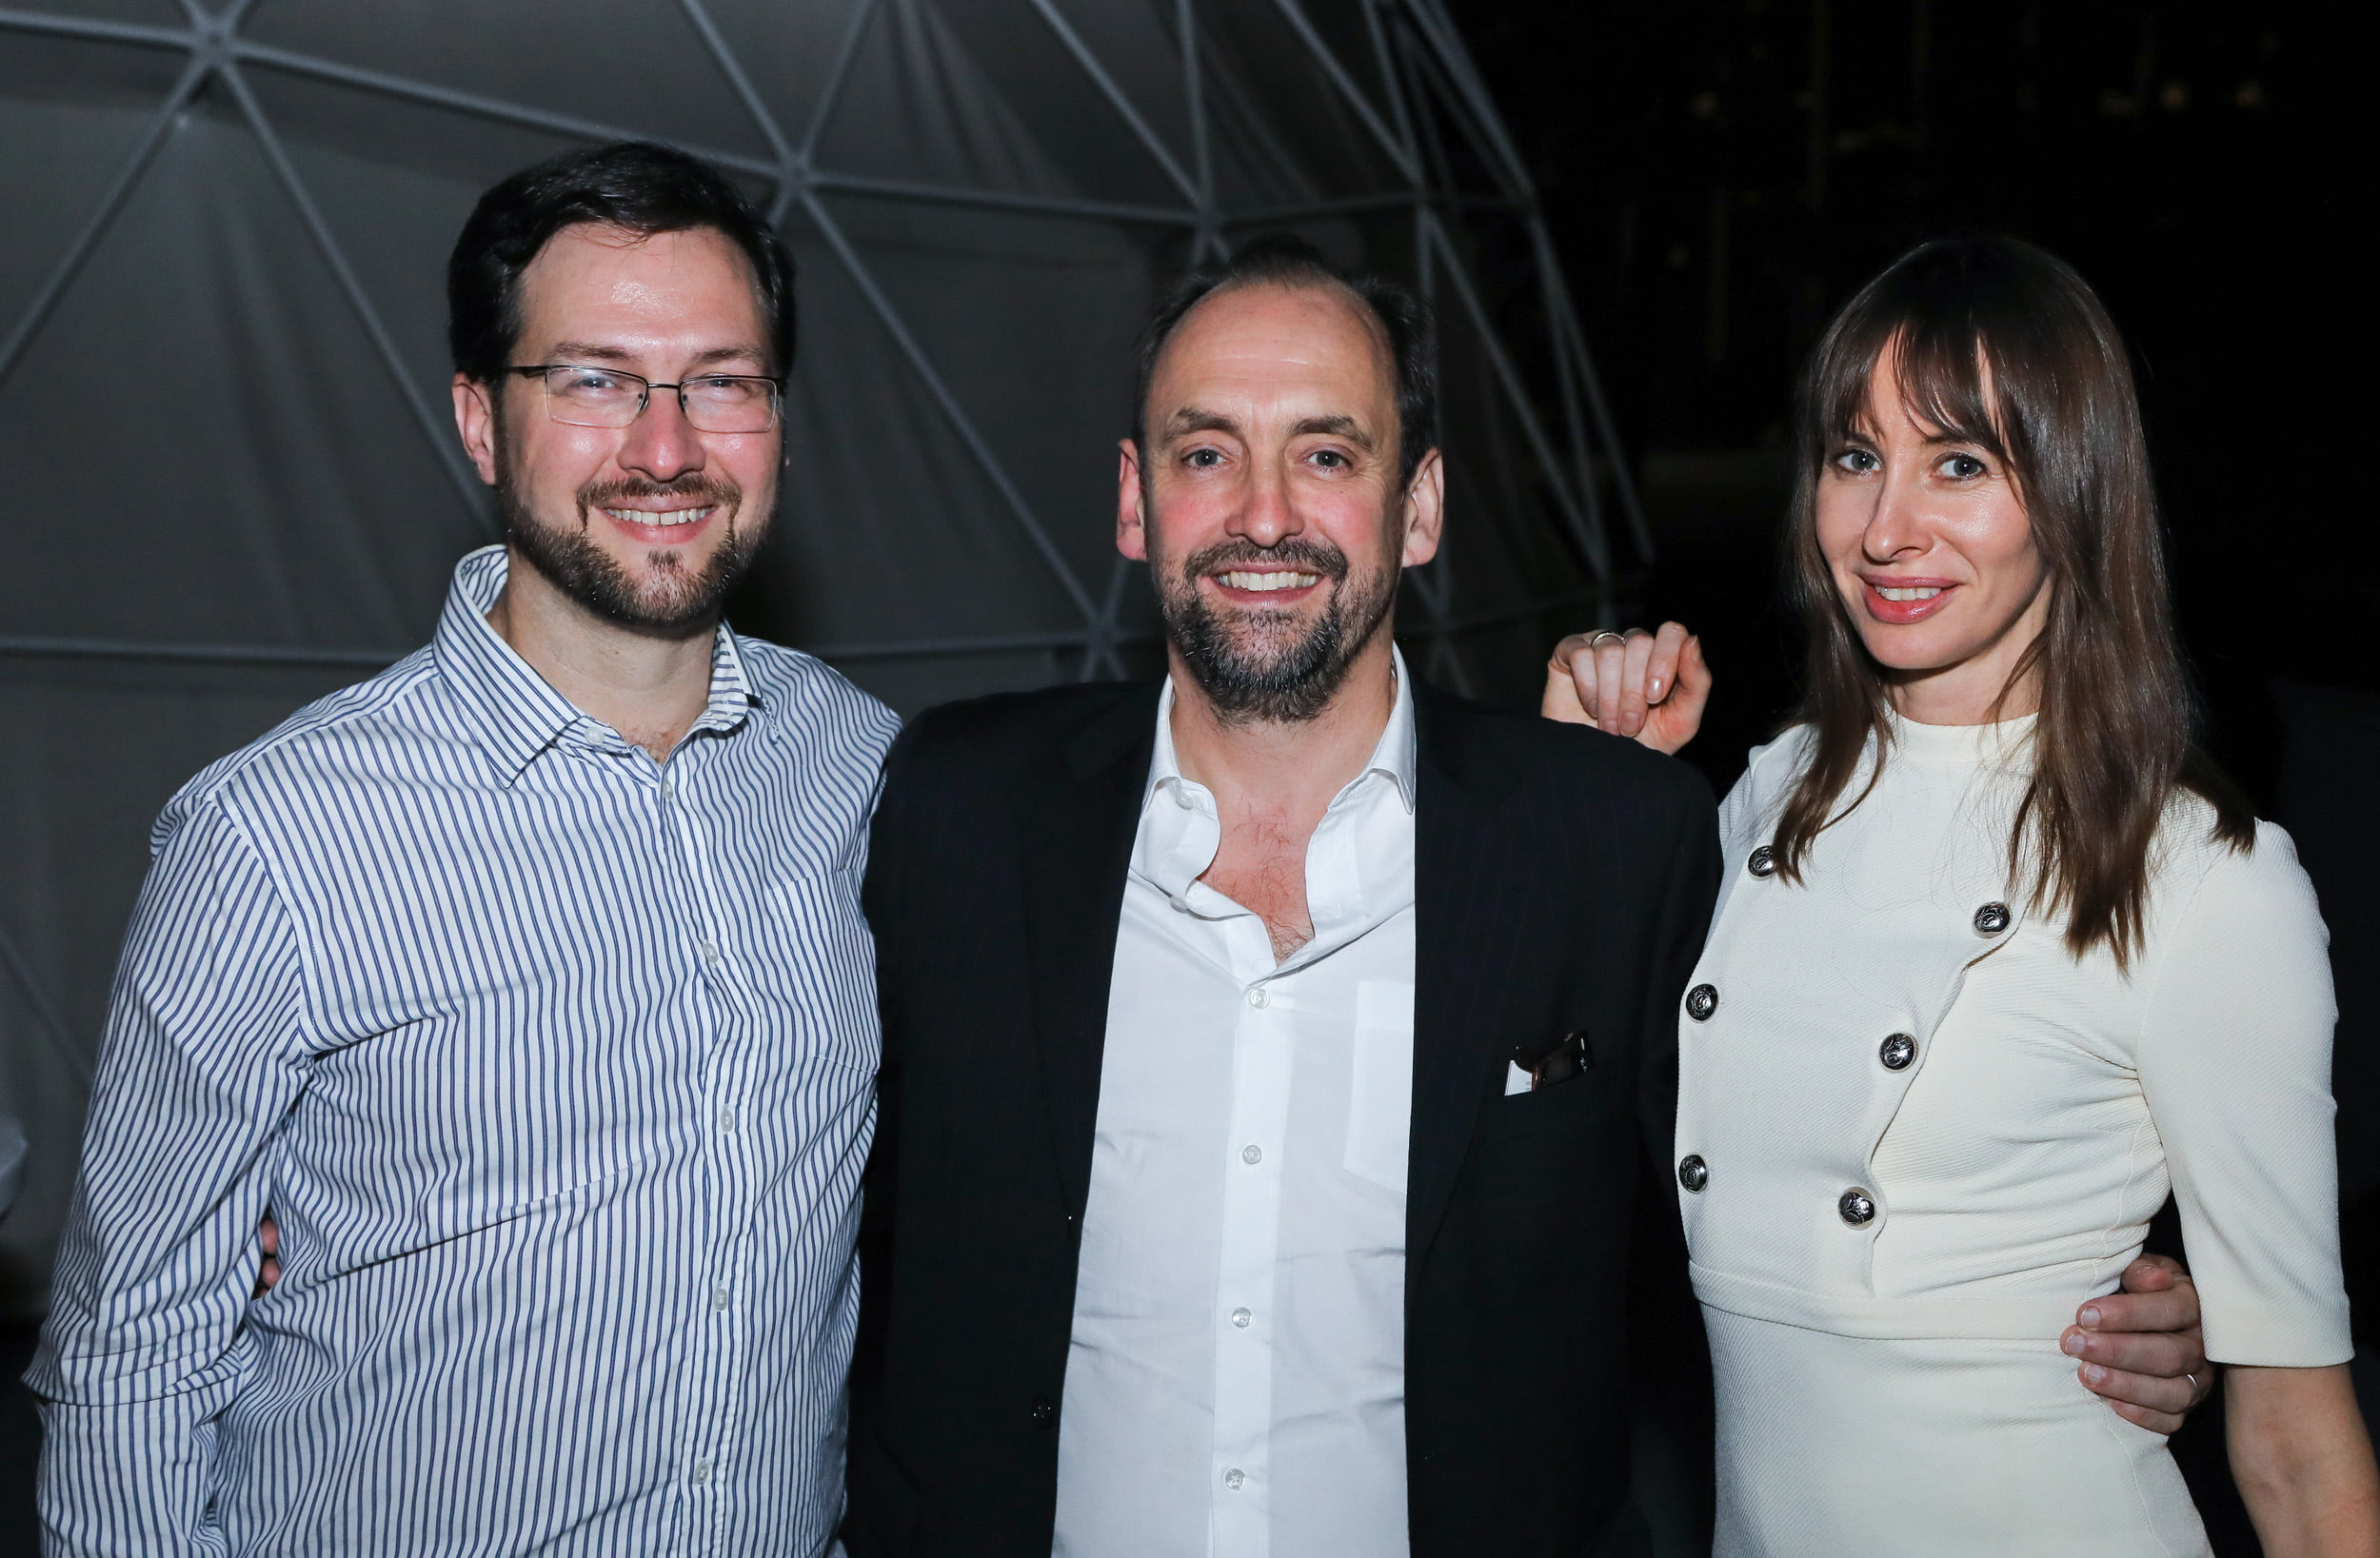 W. Andrew Powell, Nathan Crowley, and Kathia Cambron